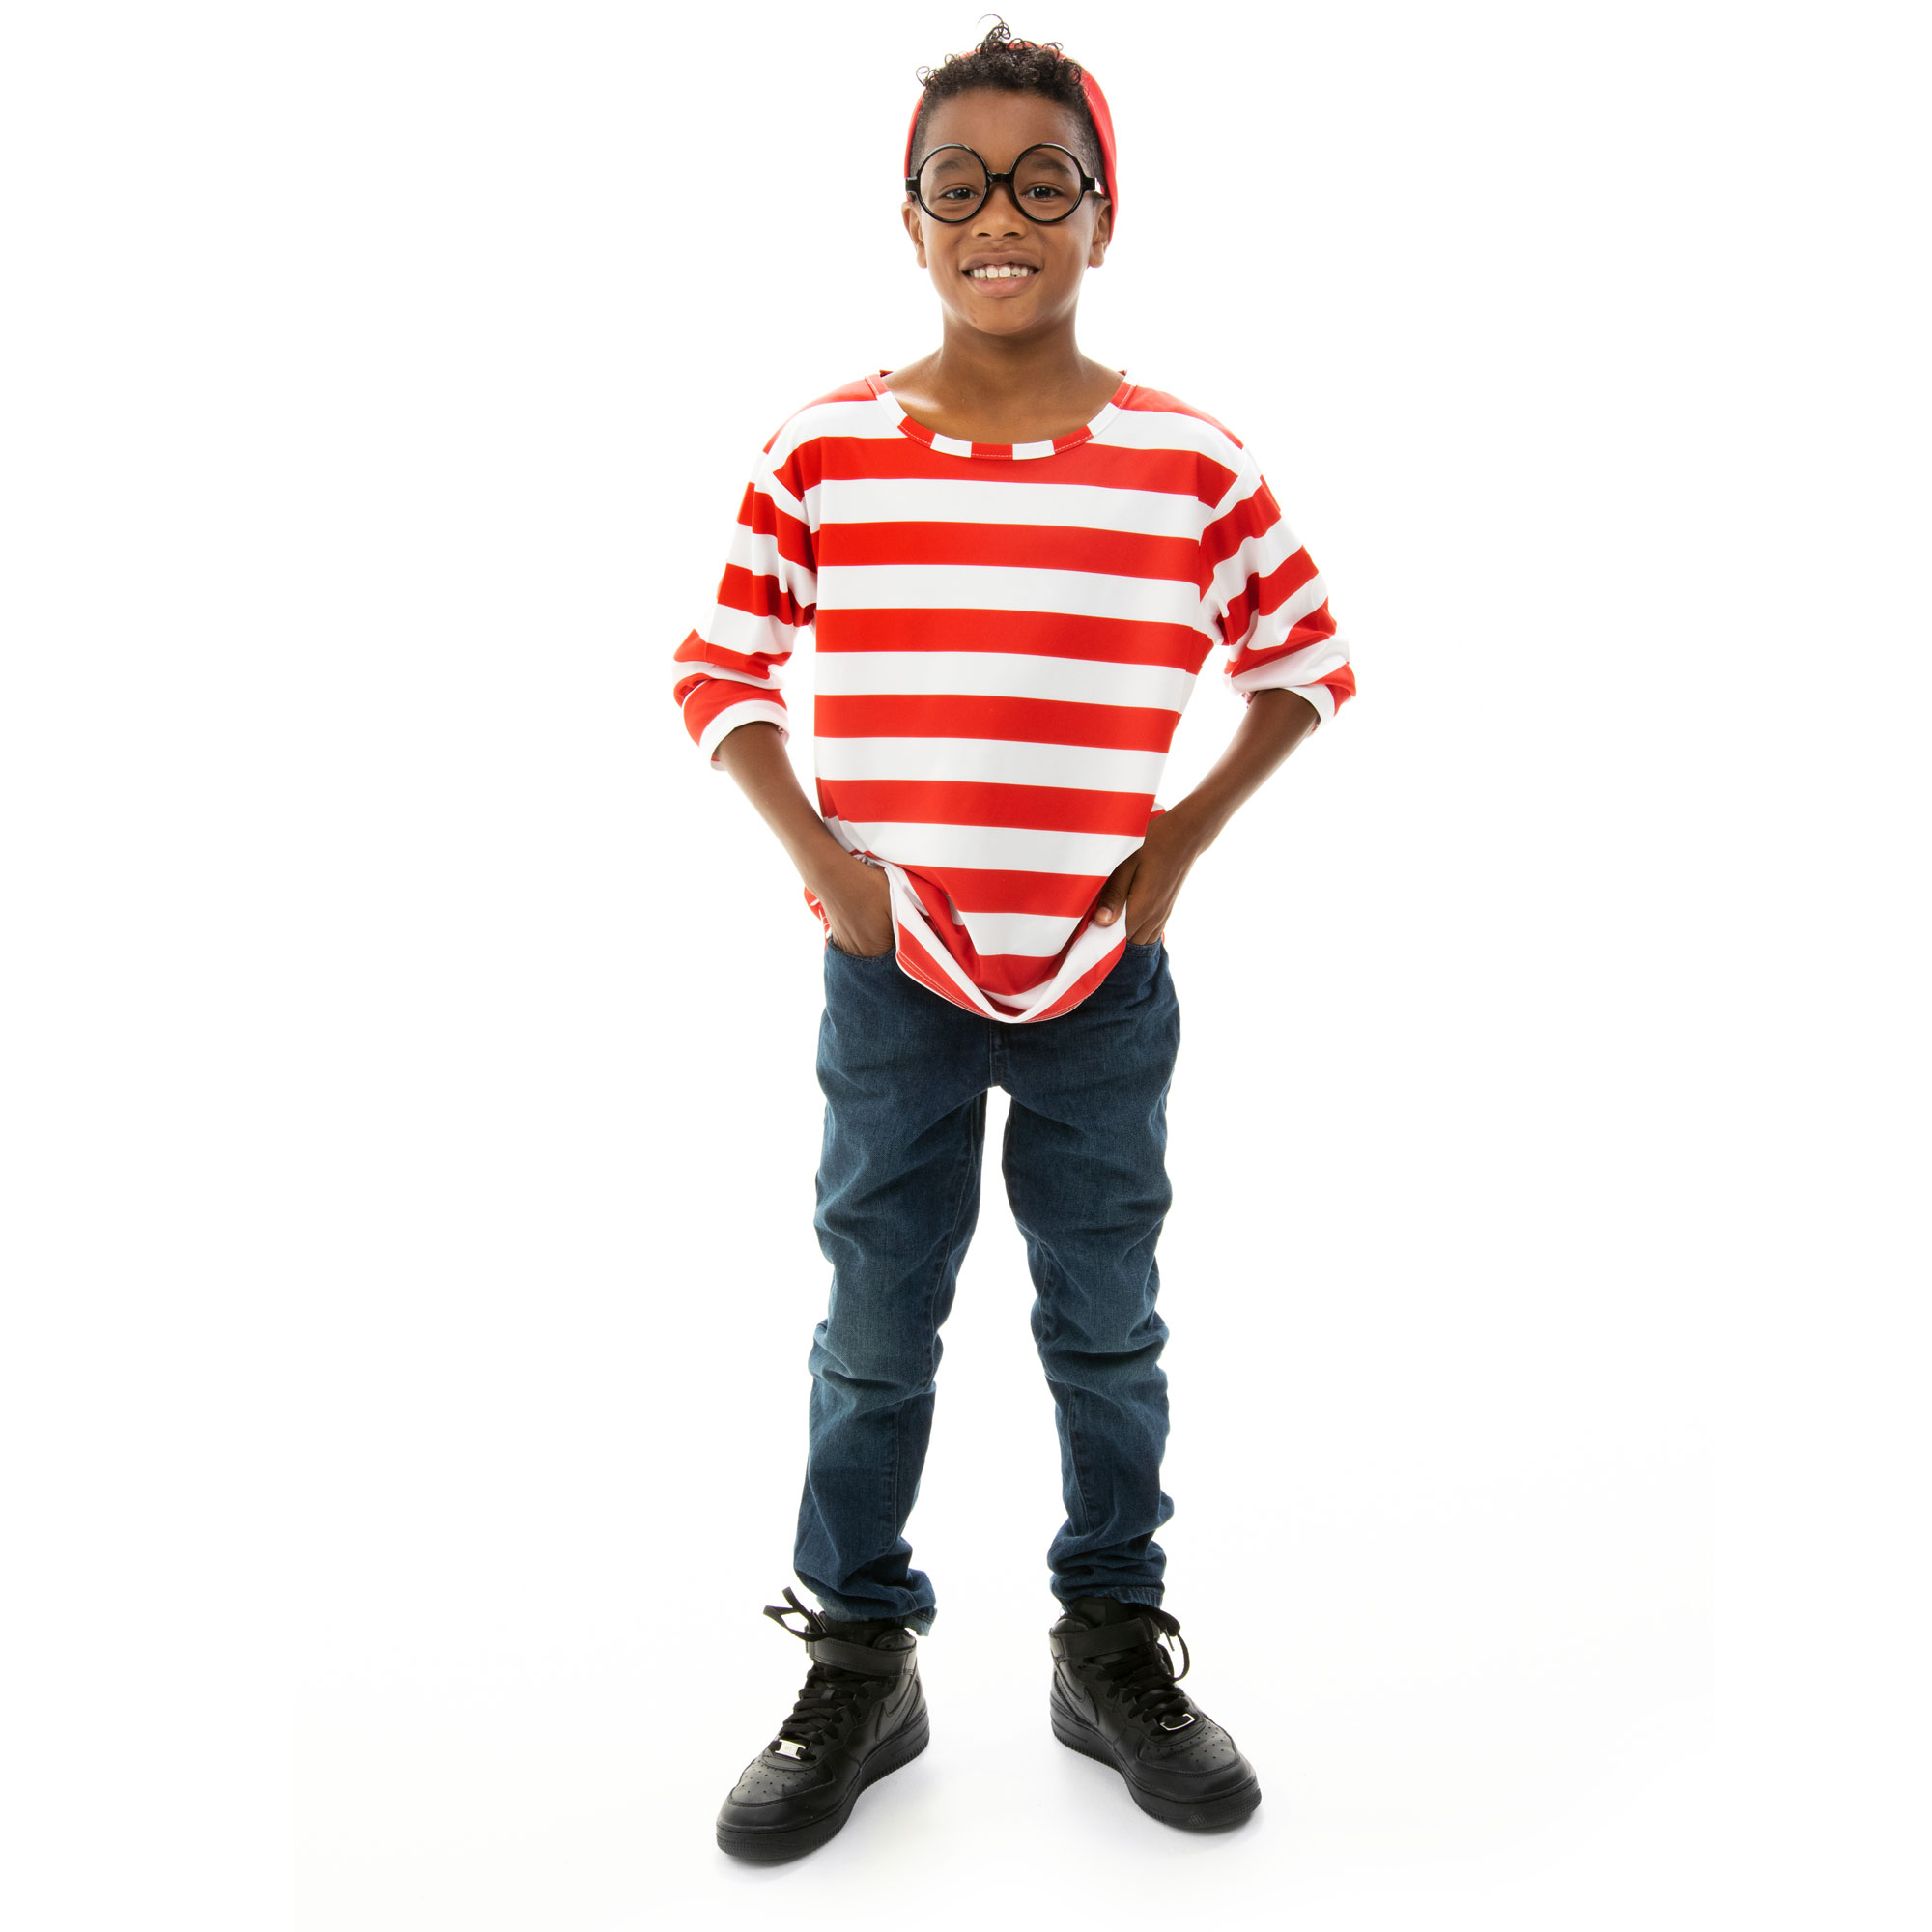 Where's Wally Halloween Costume - Child's Cosplay Outfit, S